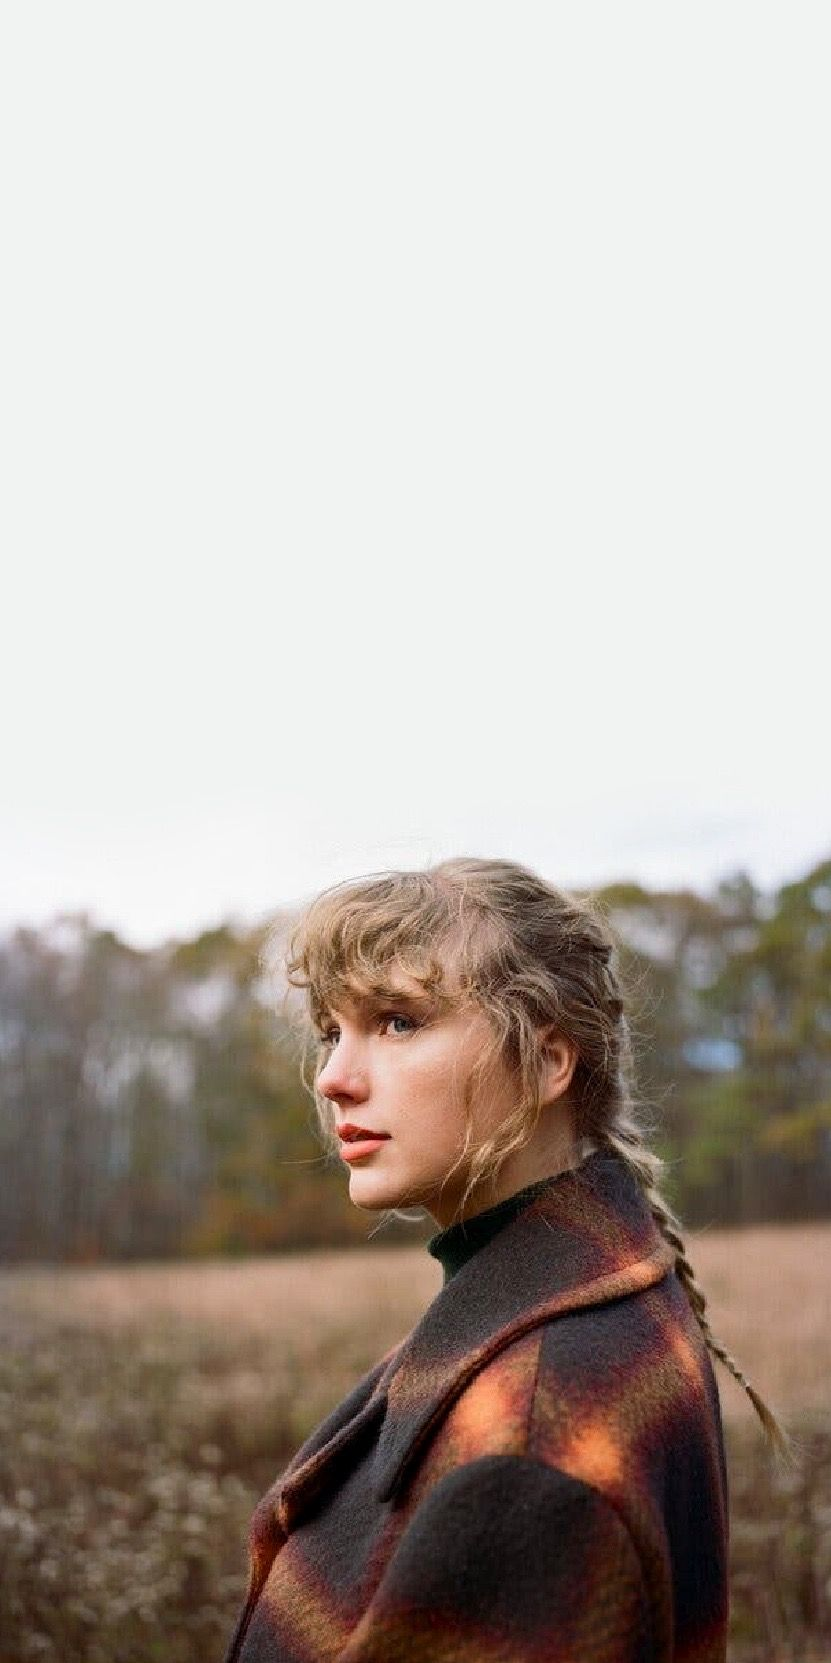 Taylor Swift Evermore Folklore Wallpaper For Iphone Taylor Swift Album Taylor Swift Wallpaper Taylor Swift Pictures